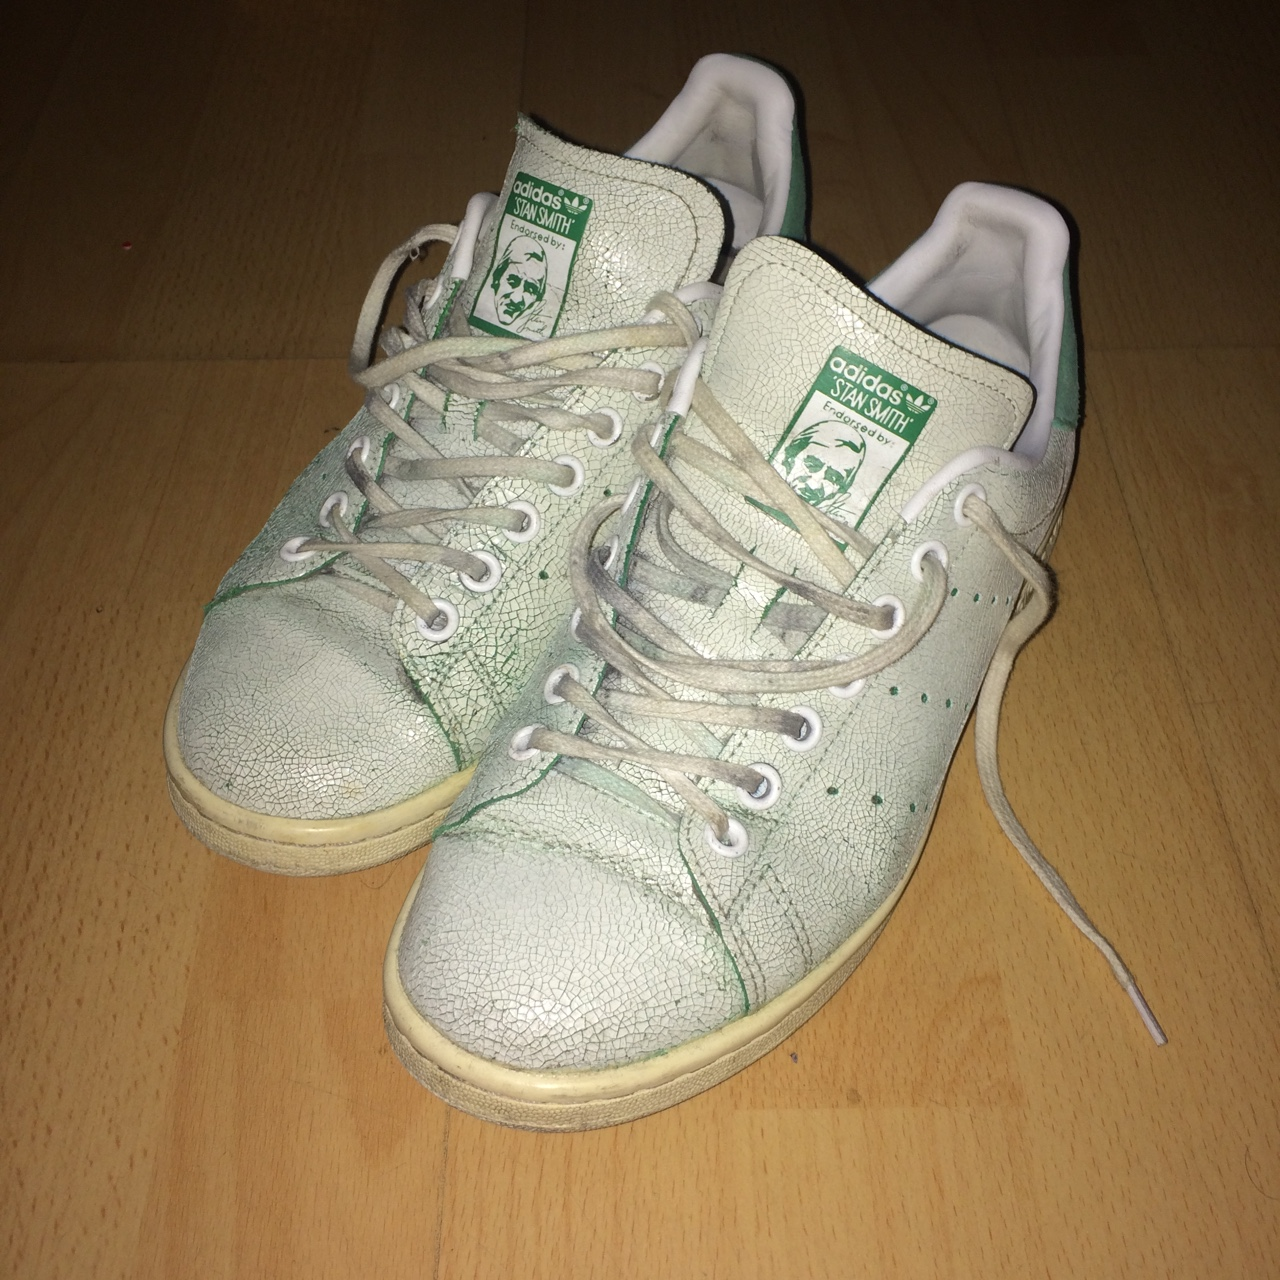 finest selection 051f0 f9ca6 Adidas Stan smith green UK 6 7/10 #supreme - Depop